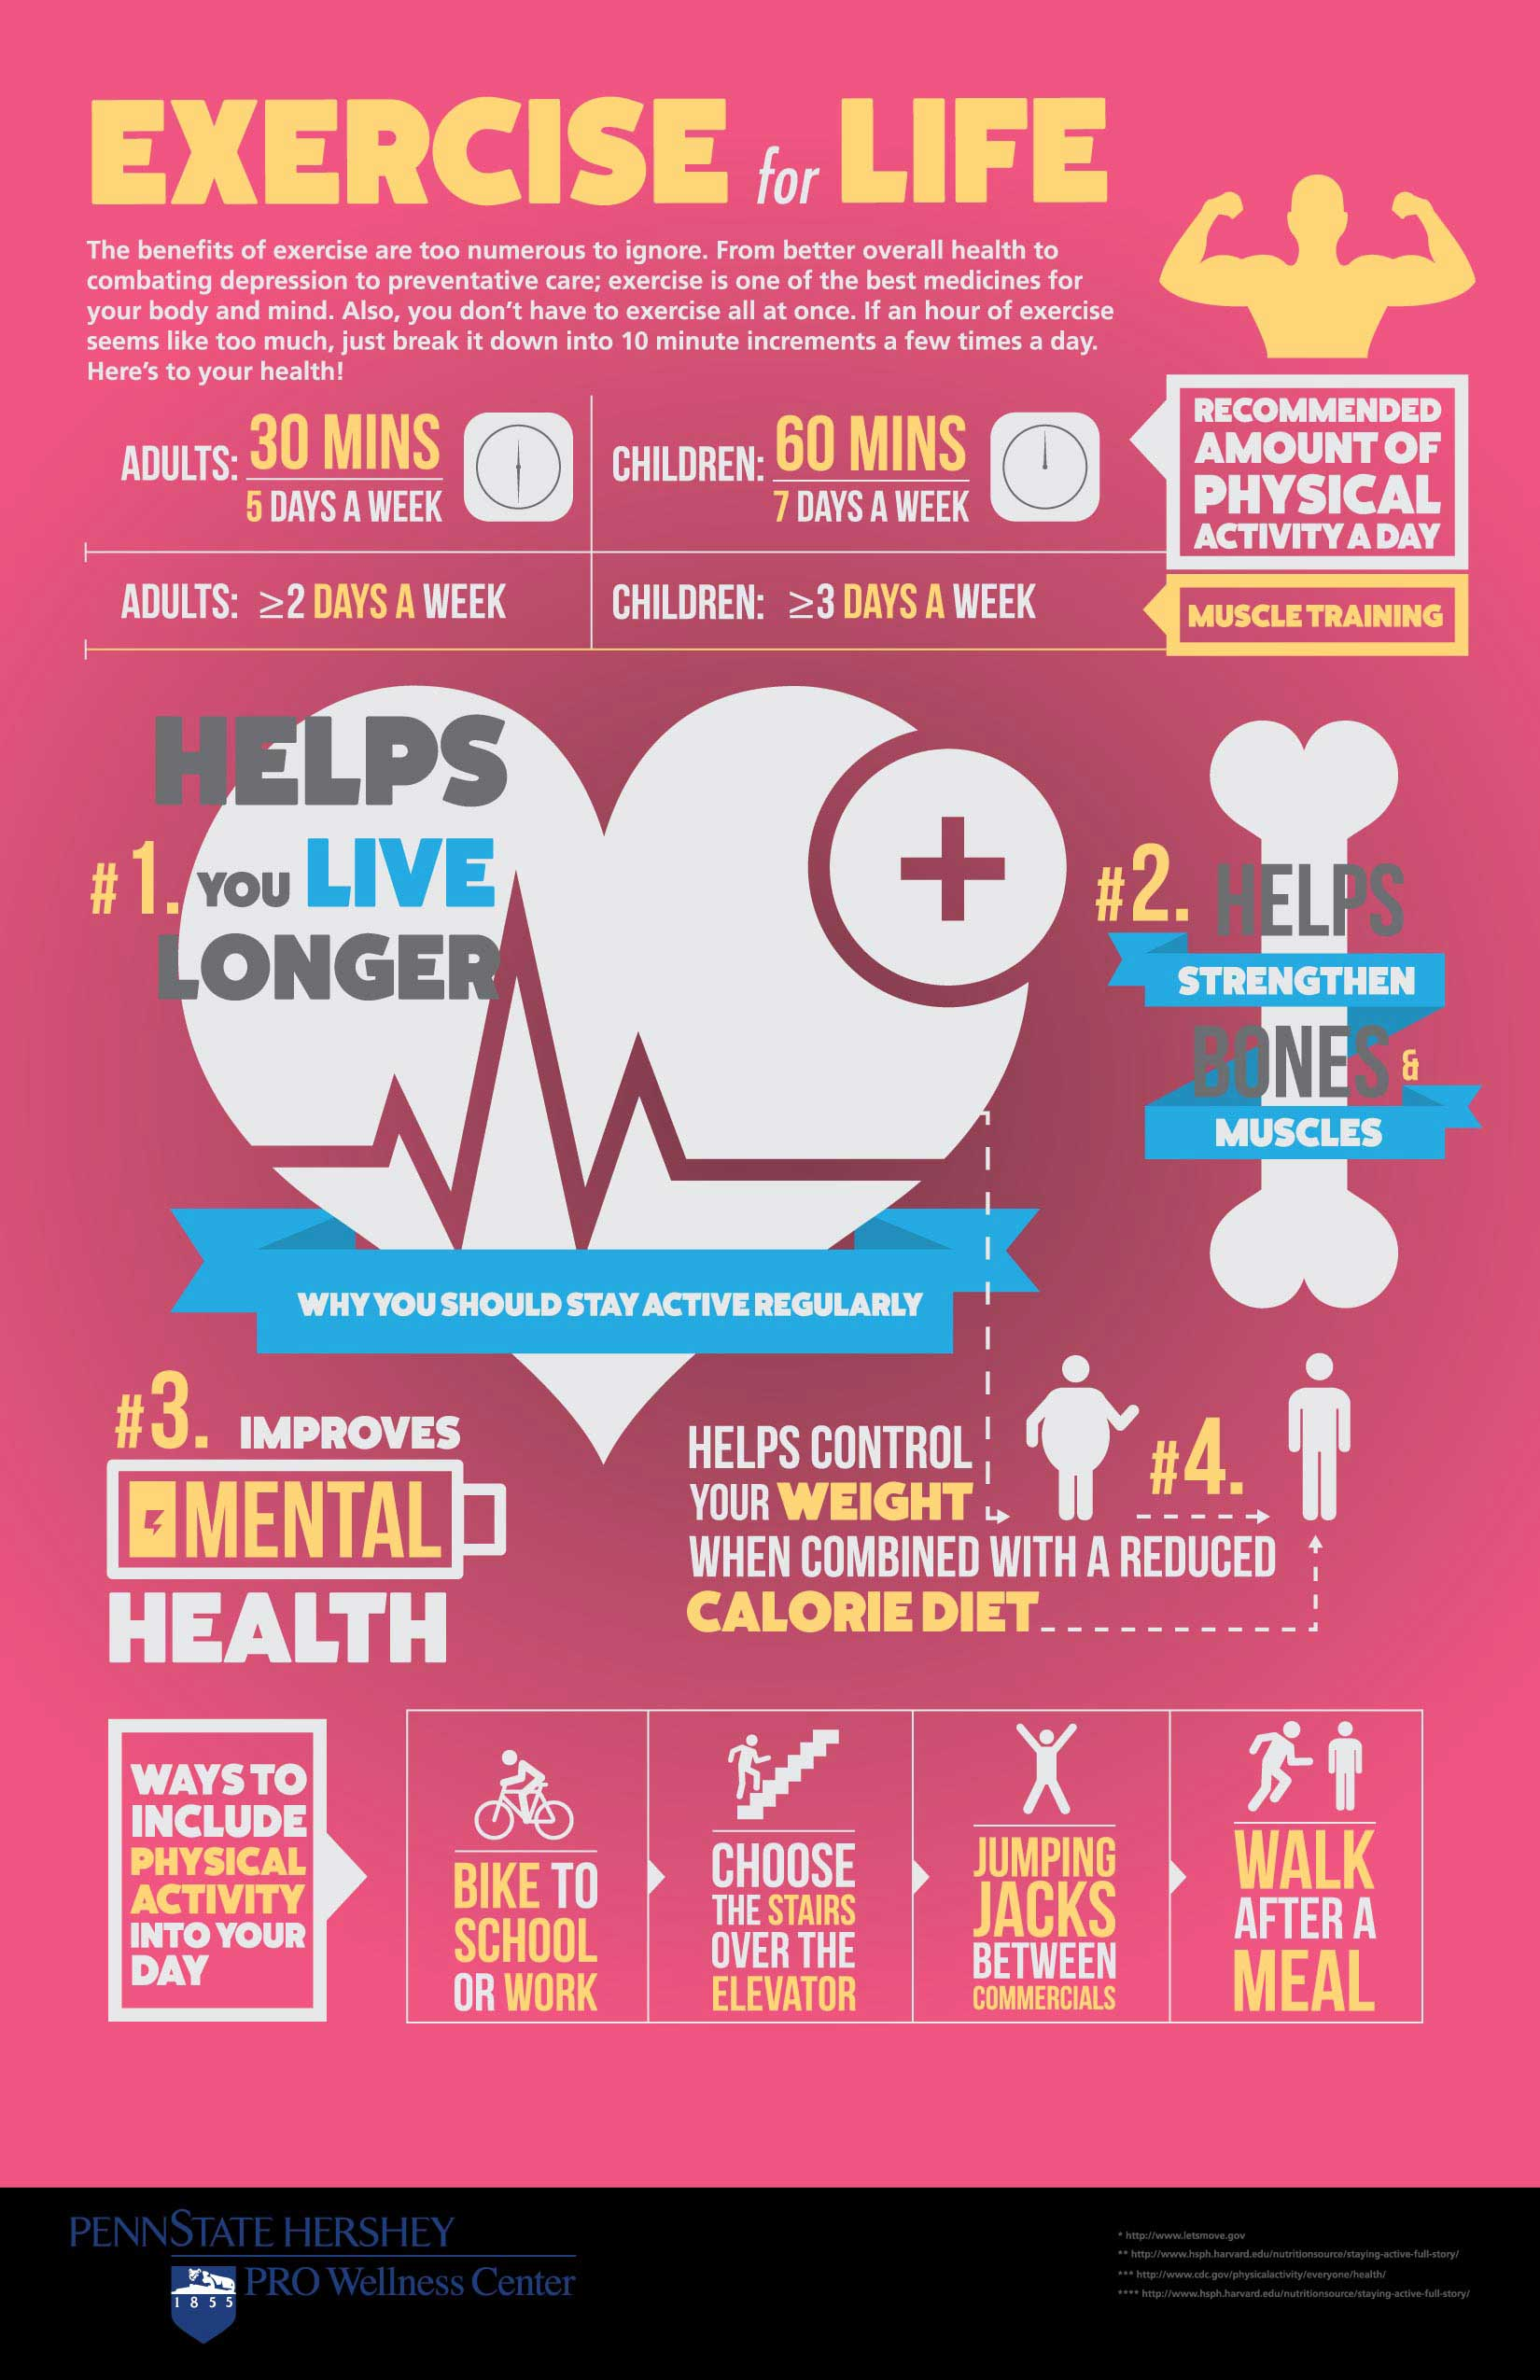 Exercise Daily Info